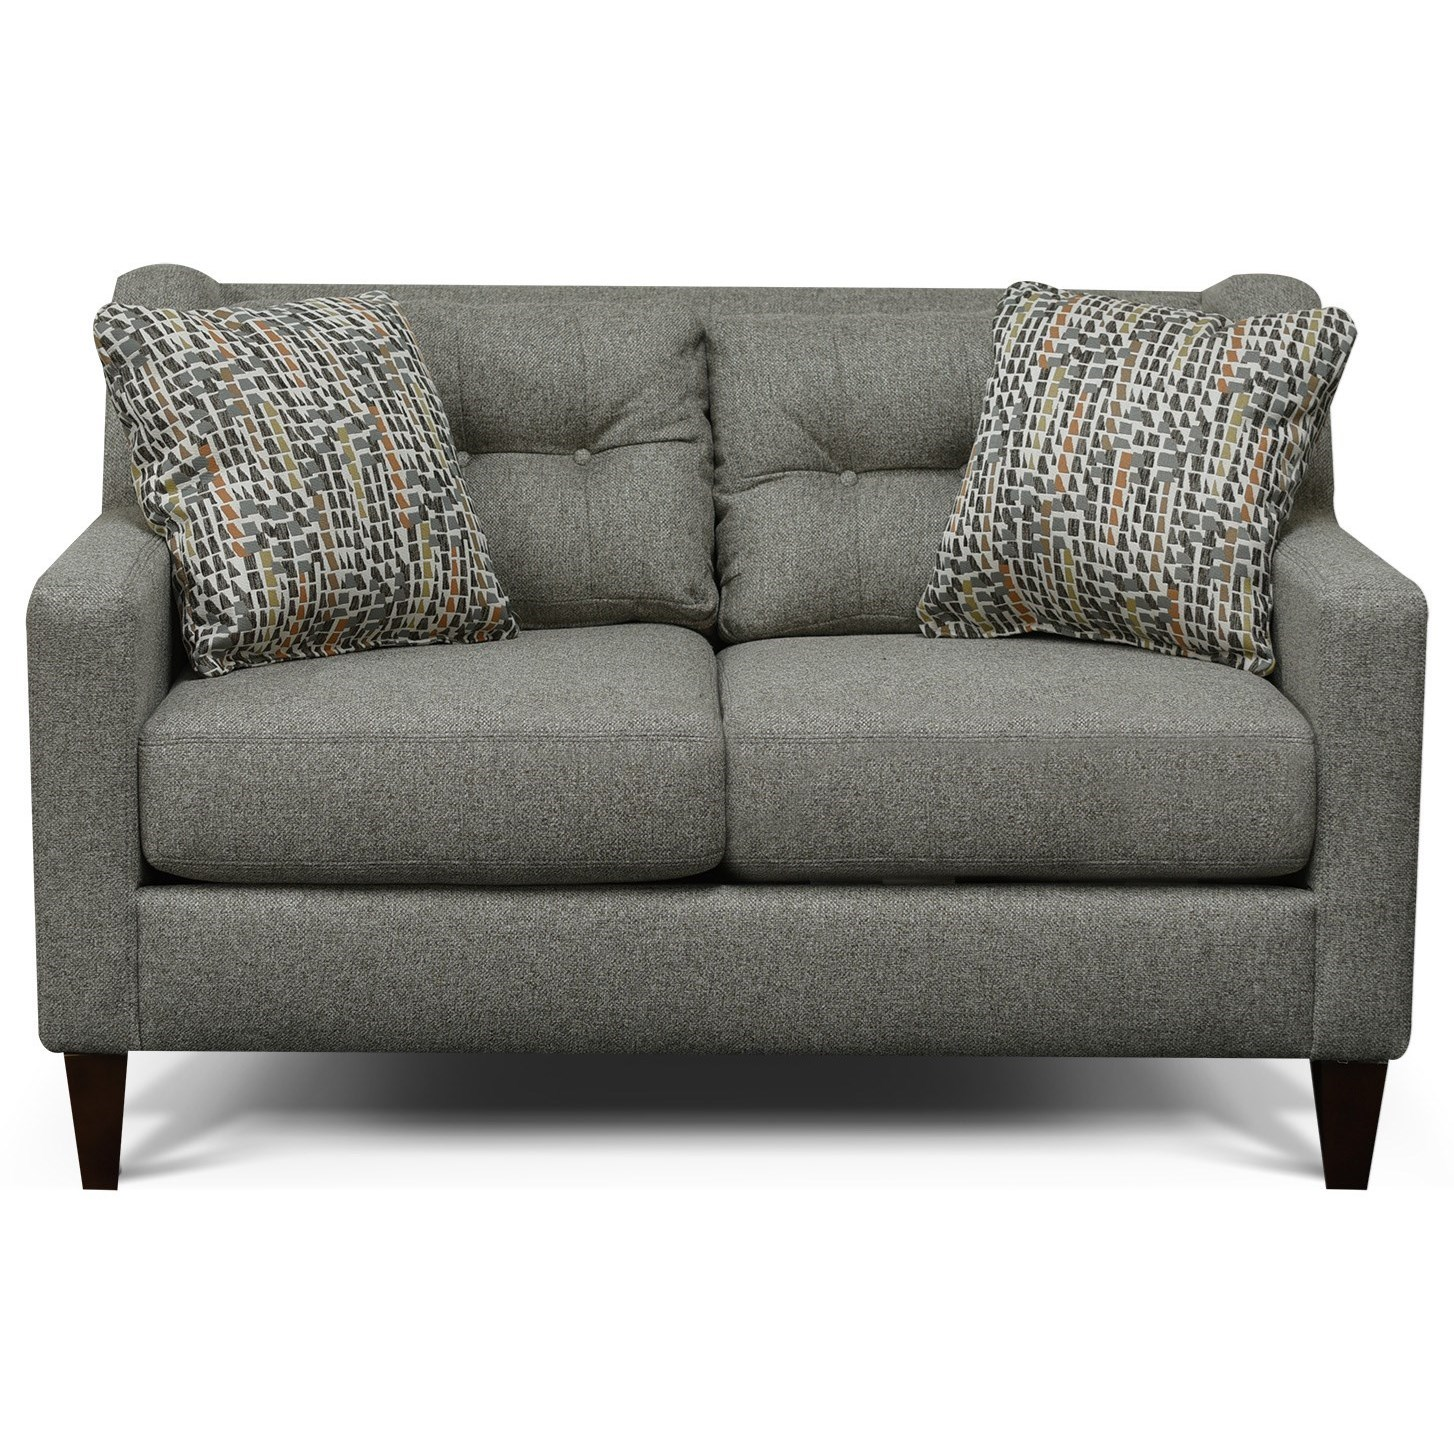 England Brody Tufted Back Loveseat - Item Number: 6L06-Brentwood-Pepper